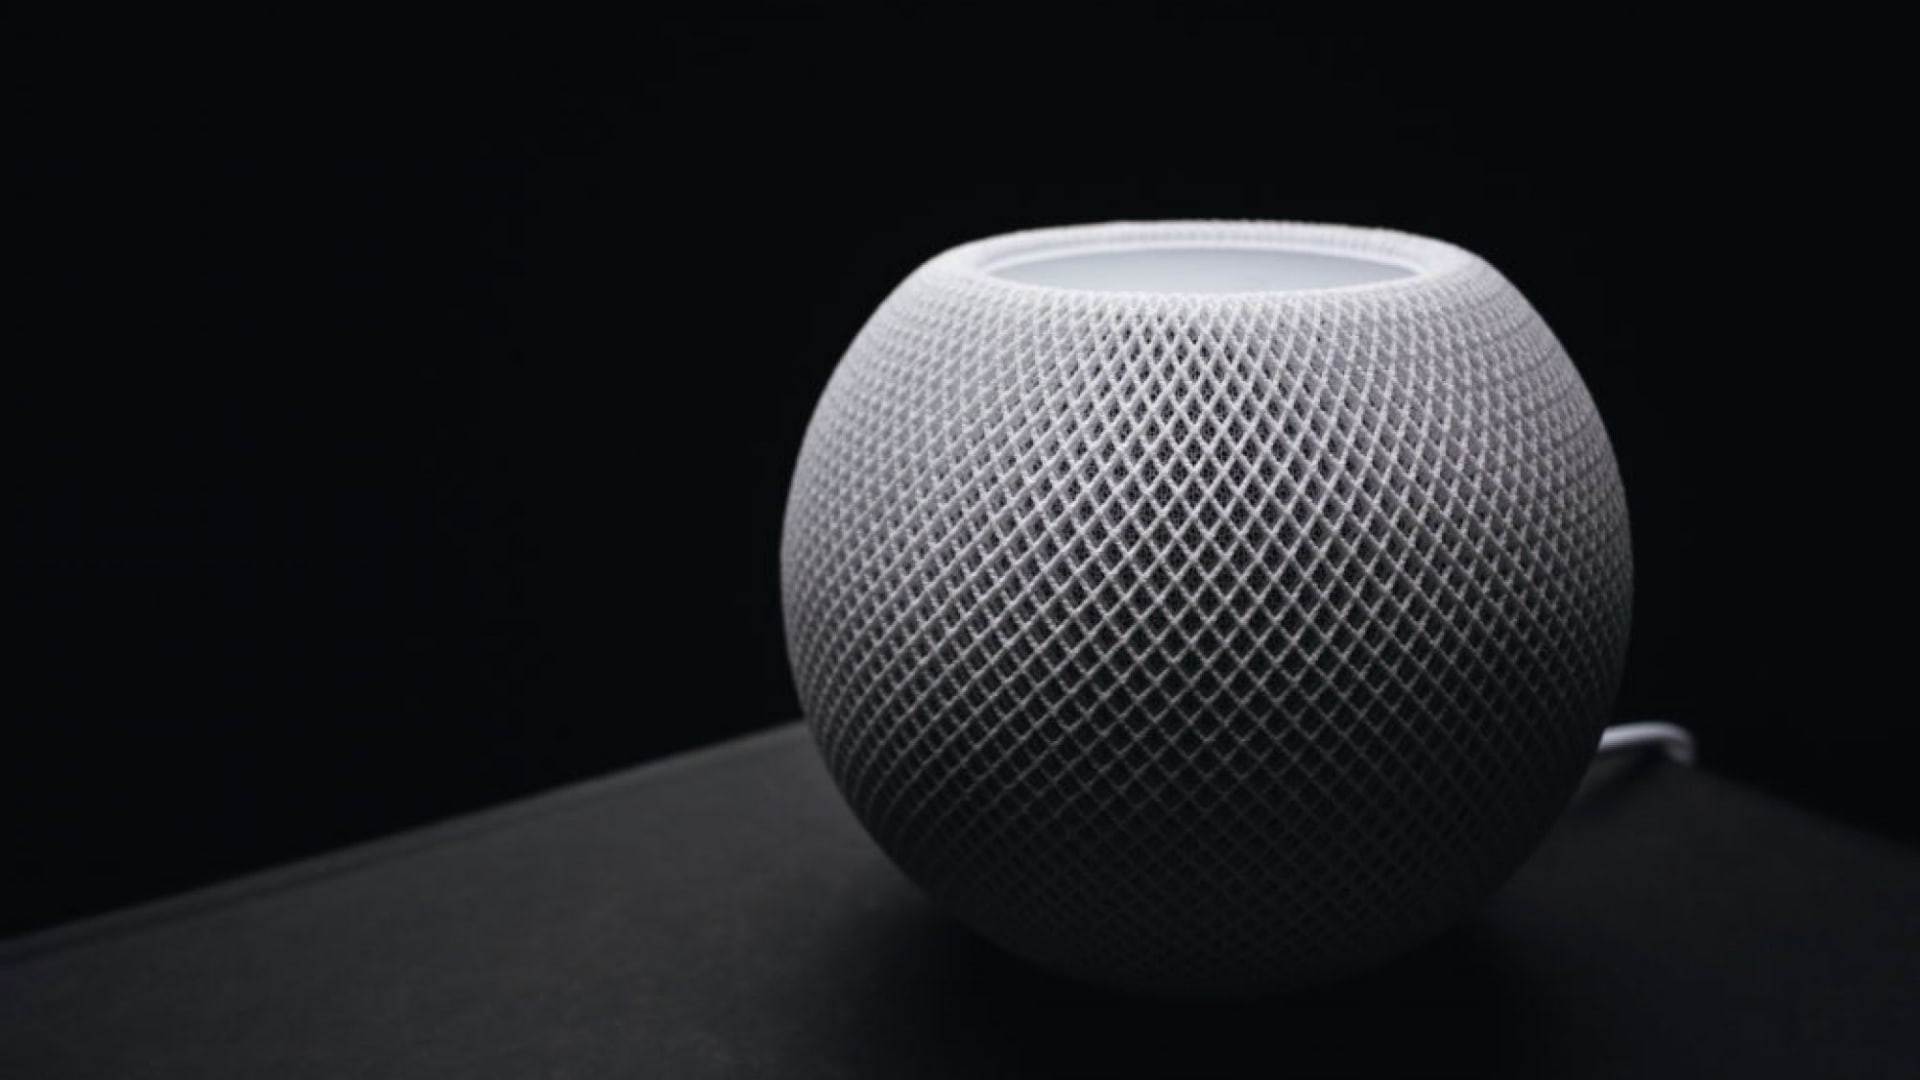 Why Apple's Smart Home Strategy Should Be Less Like Apple's and More Like Google's